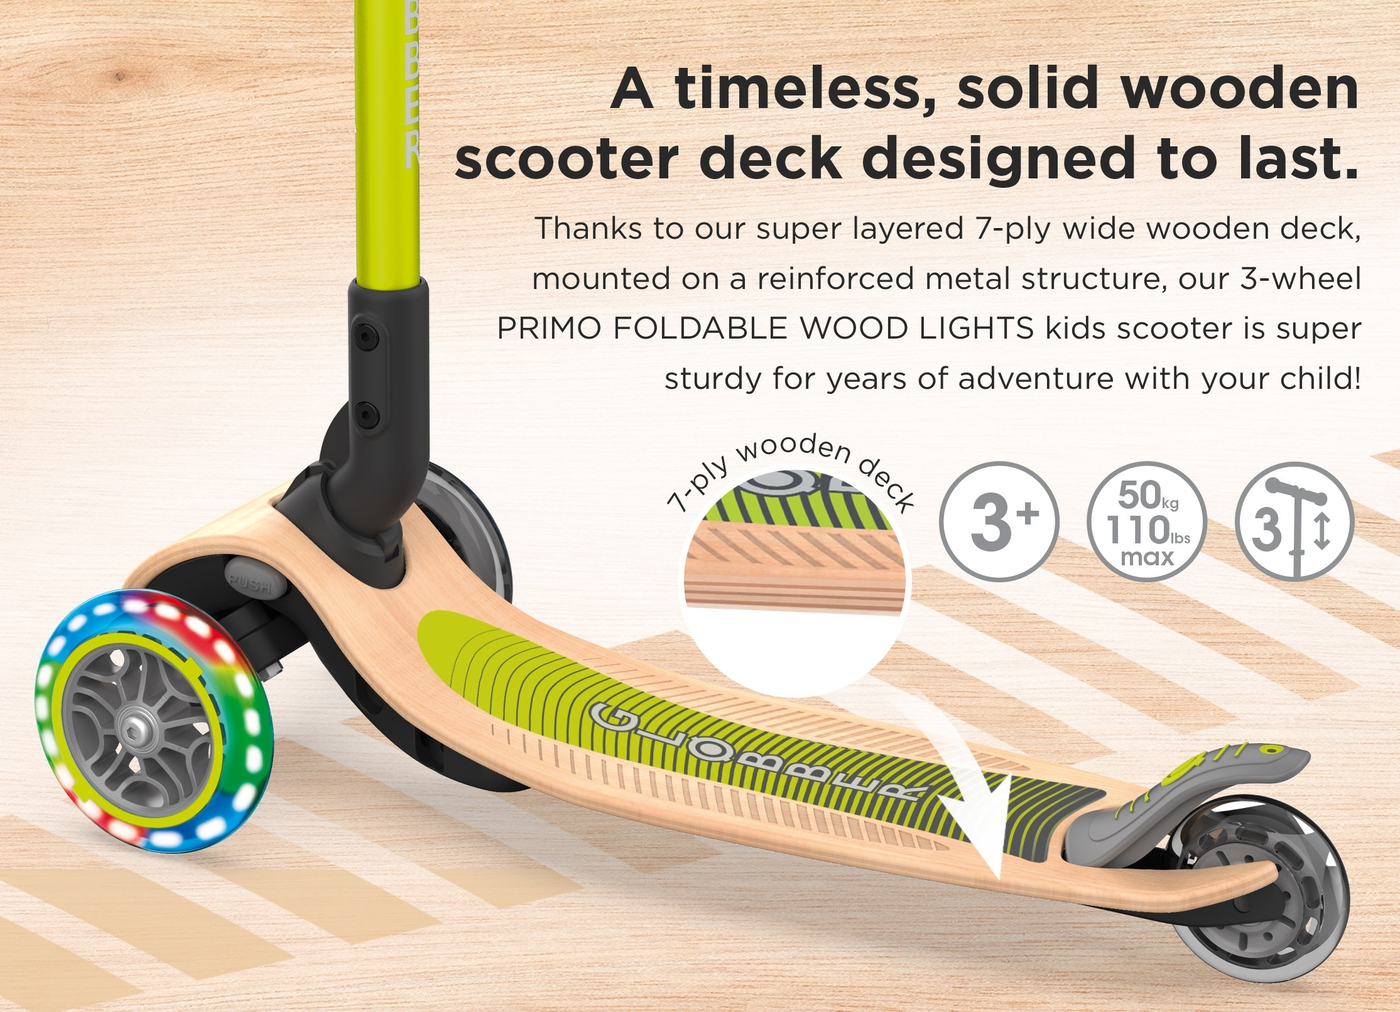 A timeless, solid wooden scooter deck designed to last.